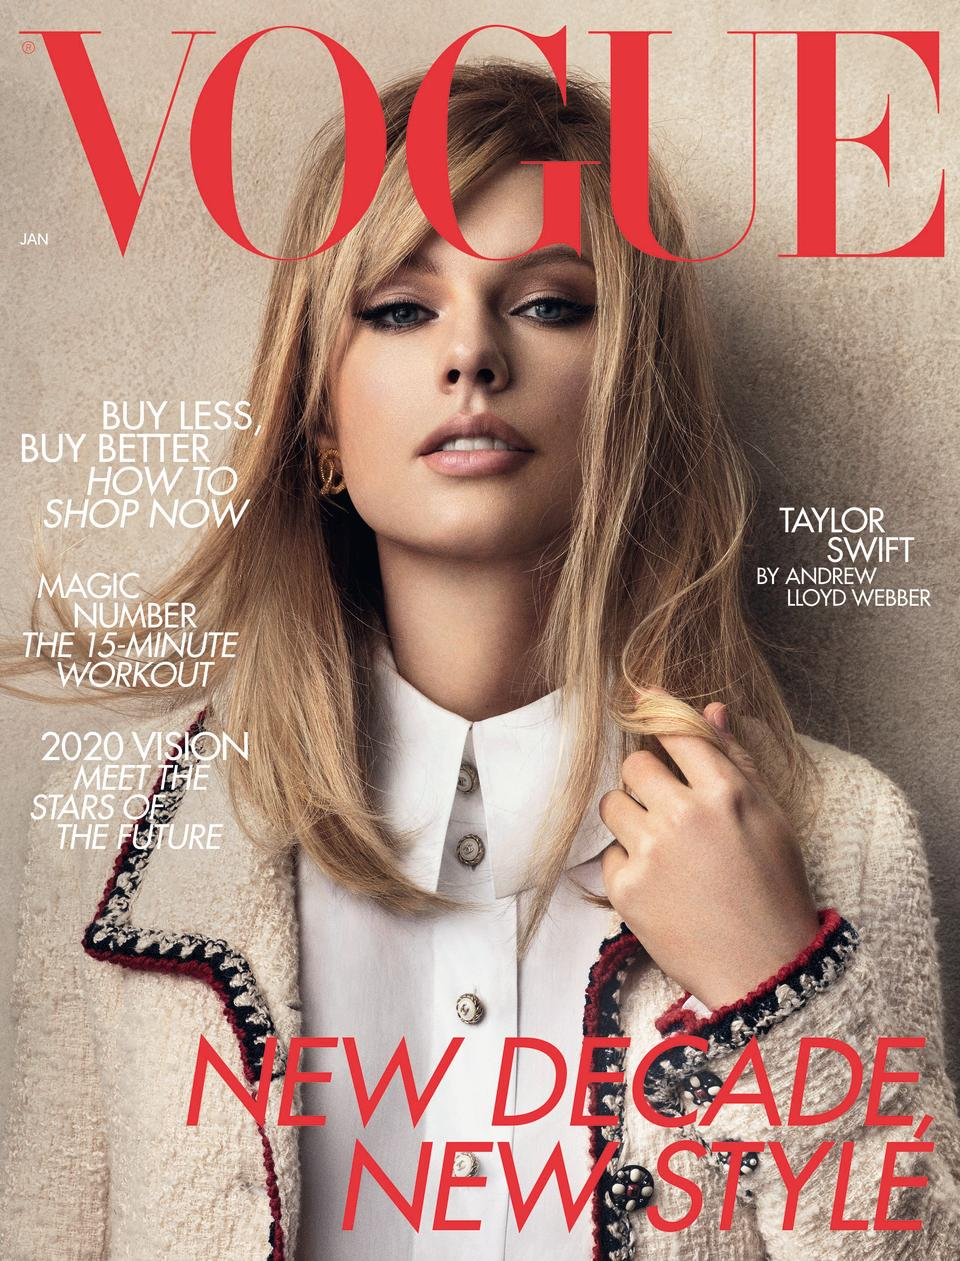 Taylor Swift on the cover of British Vogue (Craig McDean/PA)